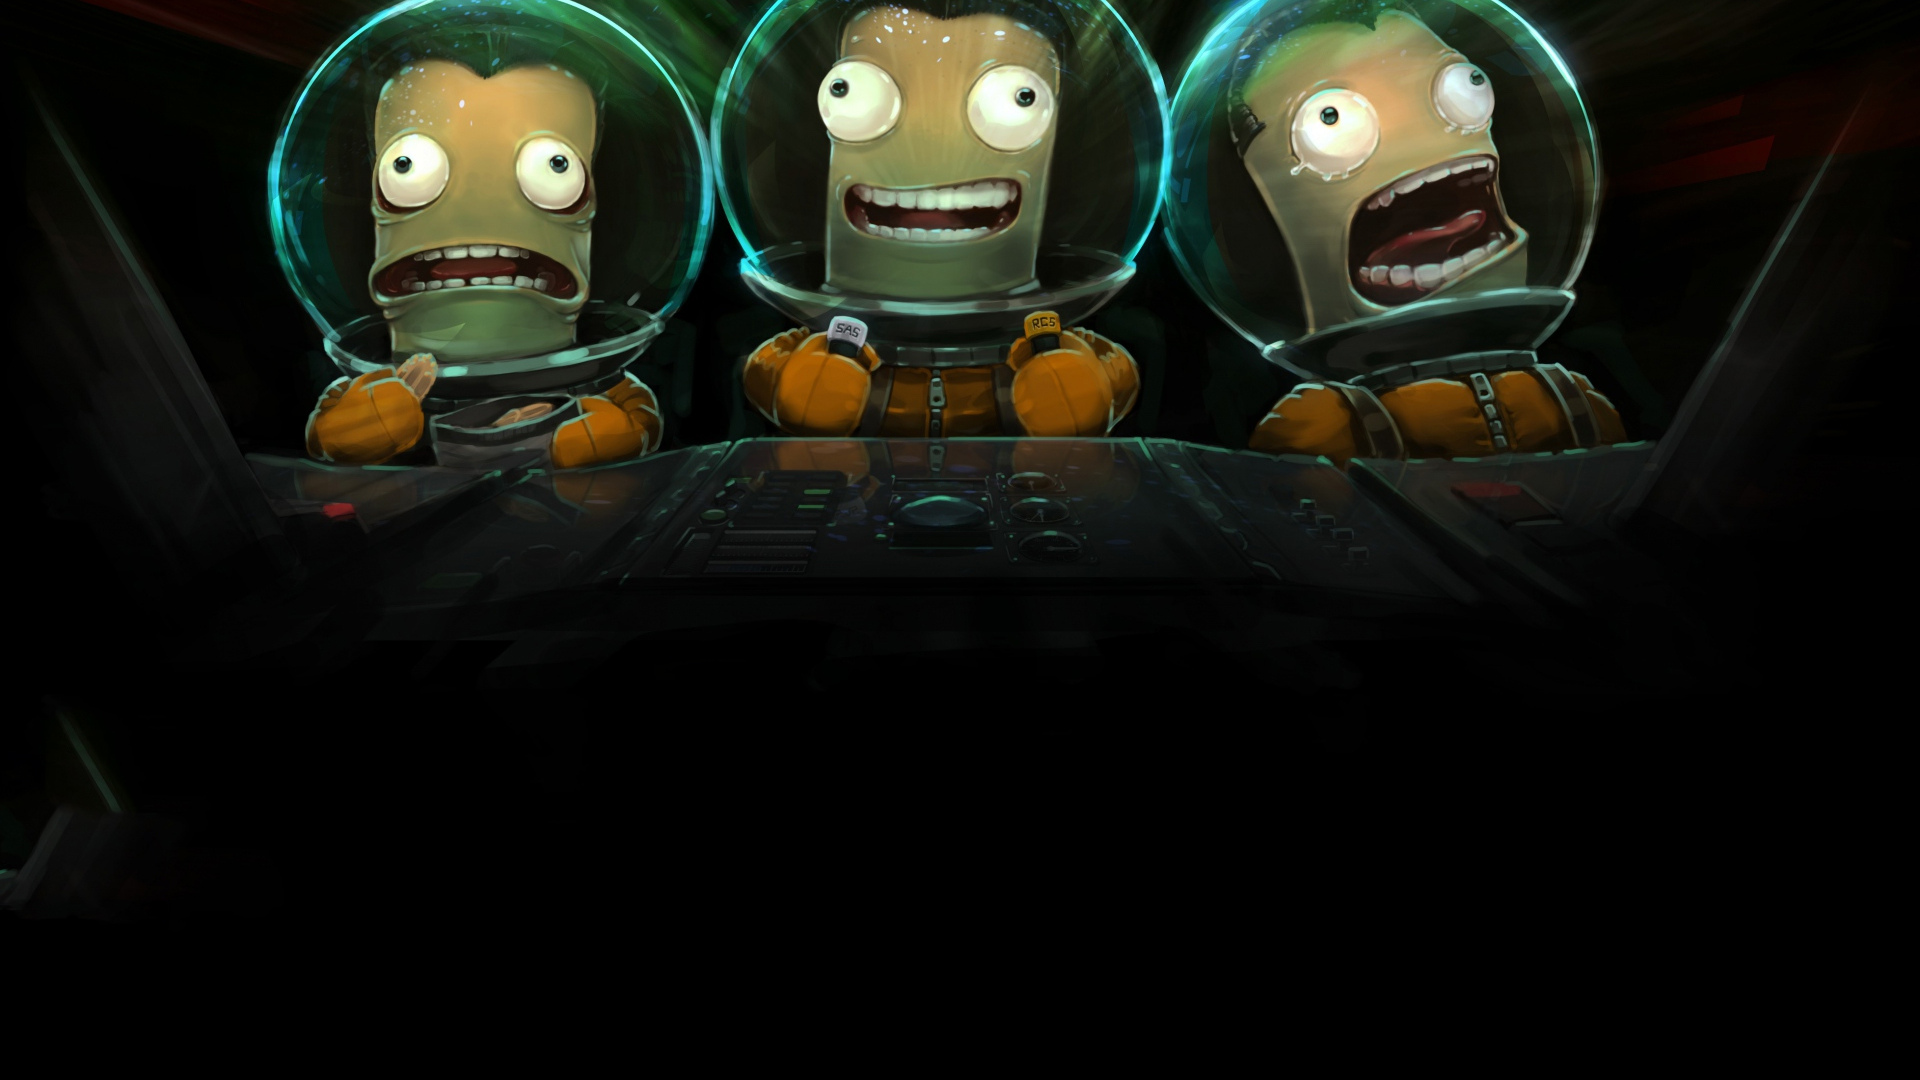 kerbal-space-program-steam-cd-key-satin-al-durmaplay.jpg